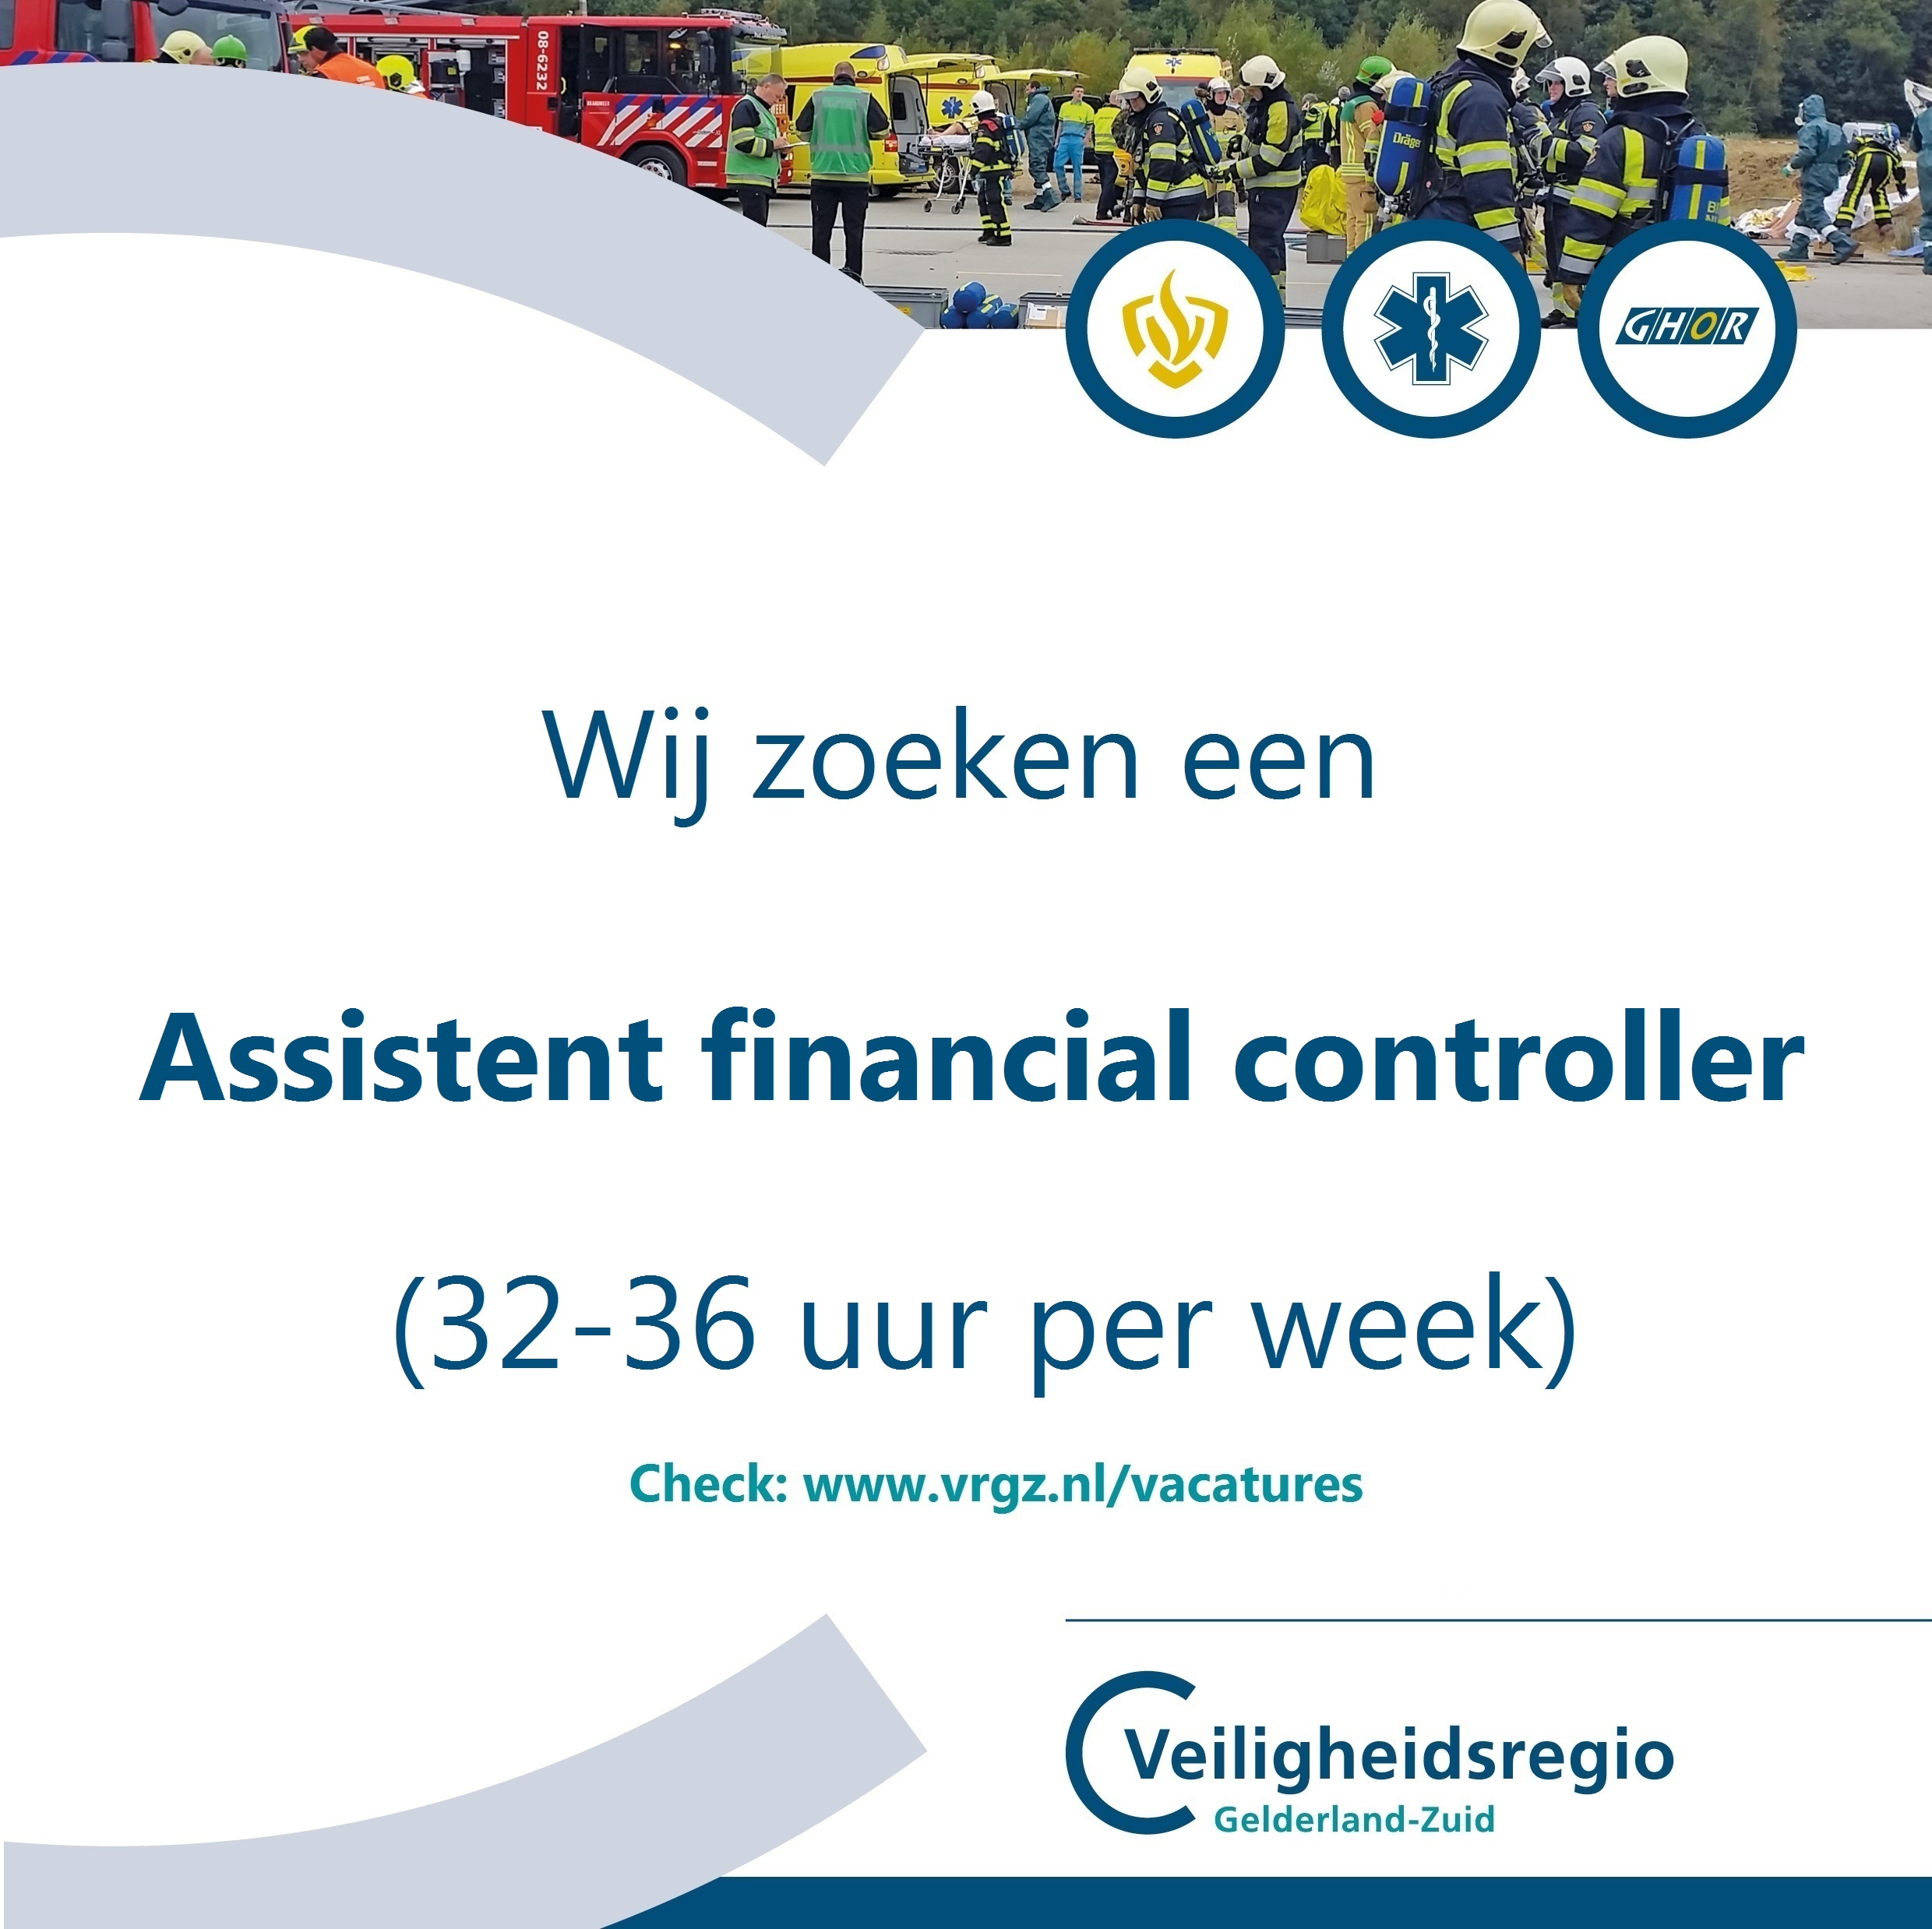 Vacature assistent financial controller.jpg